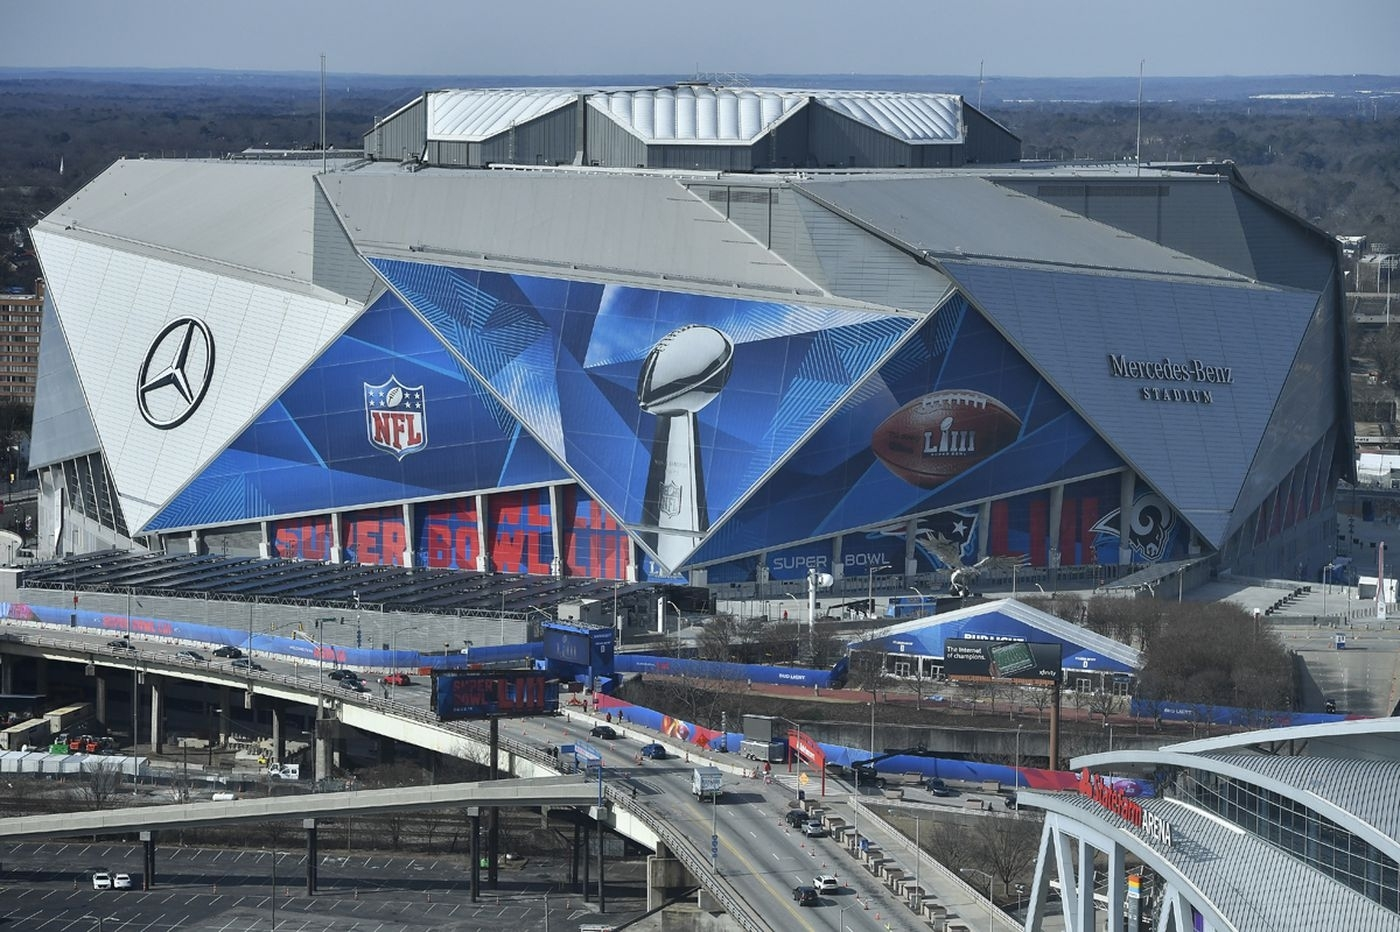 What Time Will Super Bowl 2019 Start (And End) Tonight? regarding Super Bowl 2019 City